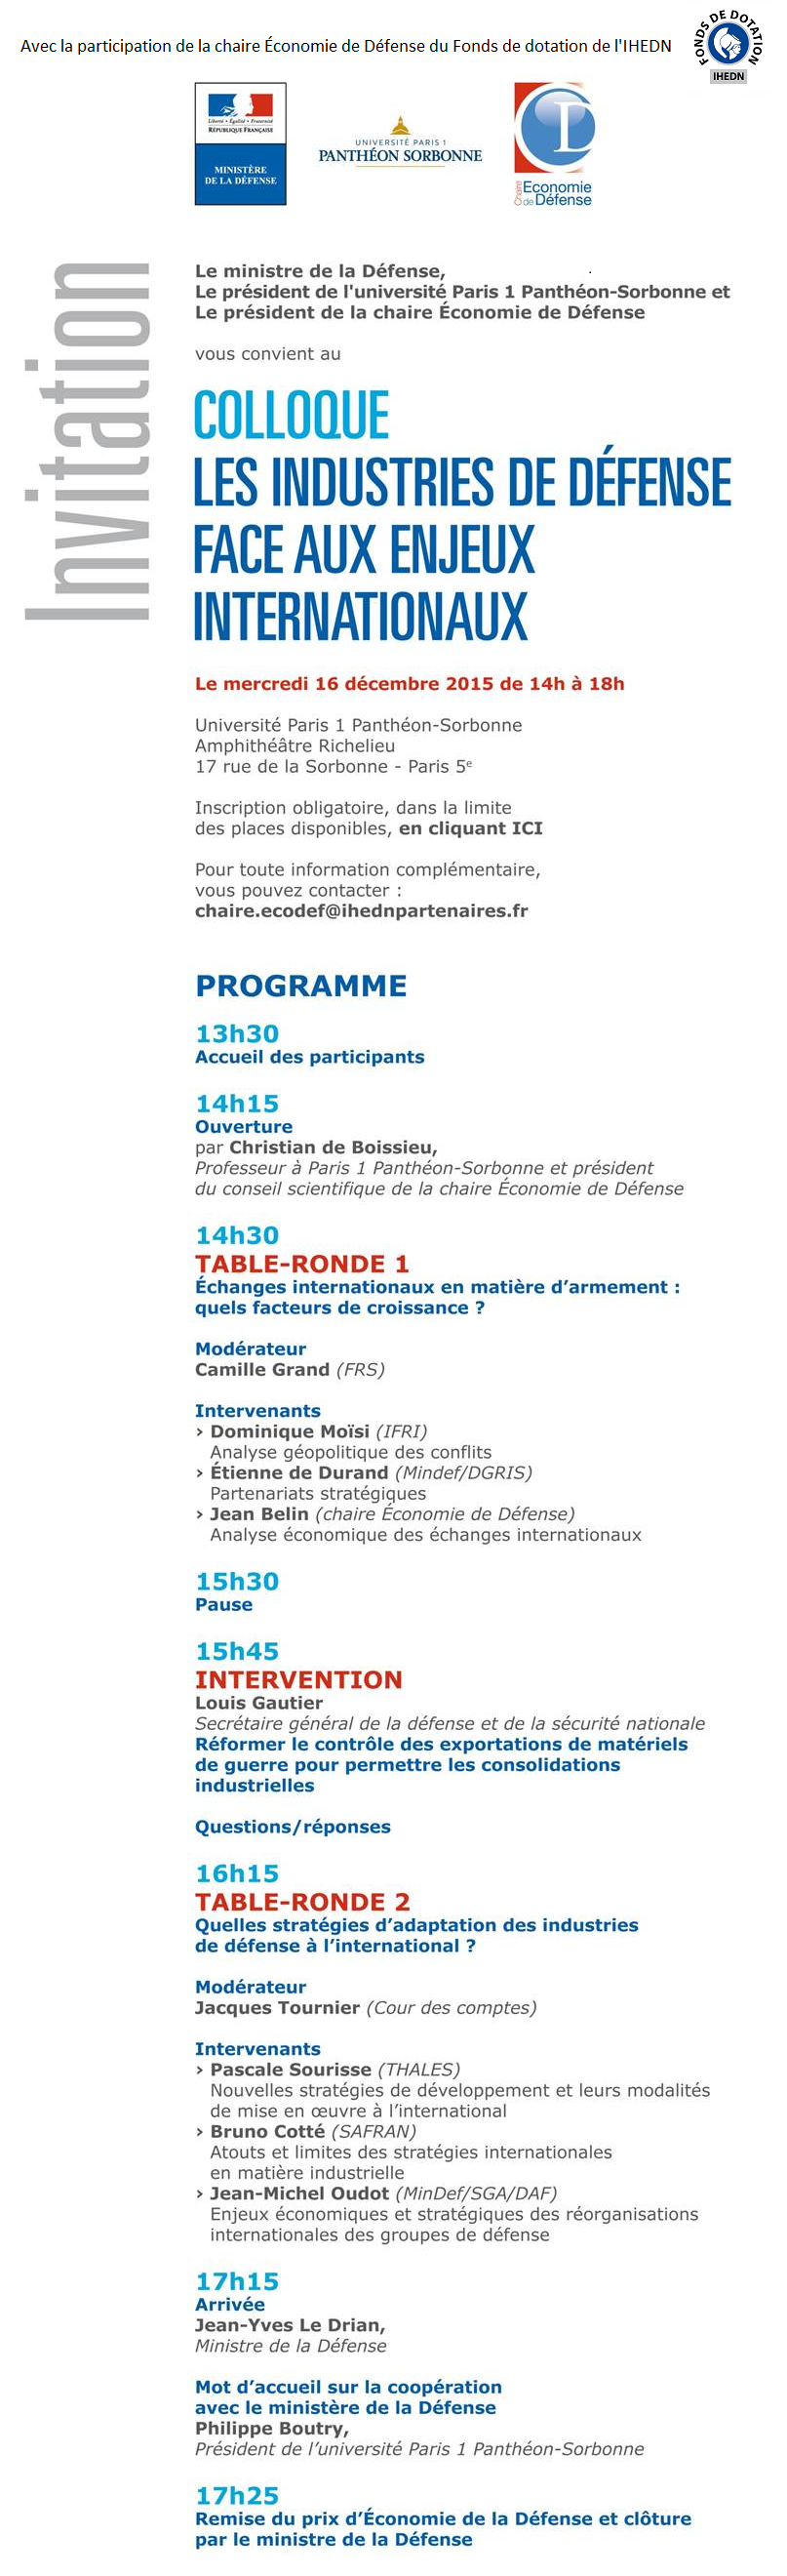 INVITATION - chaire Economie de Défense - colloque Industries de défense